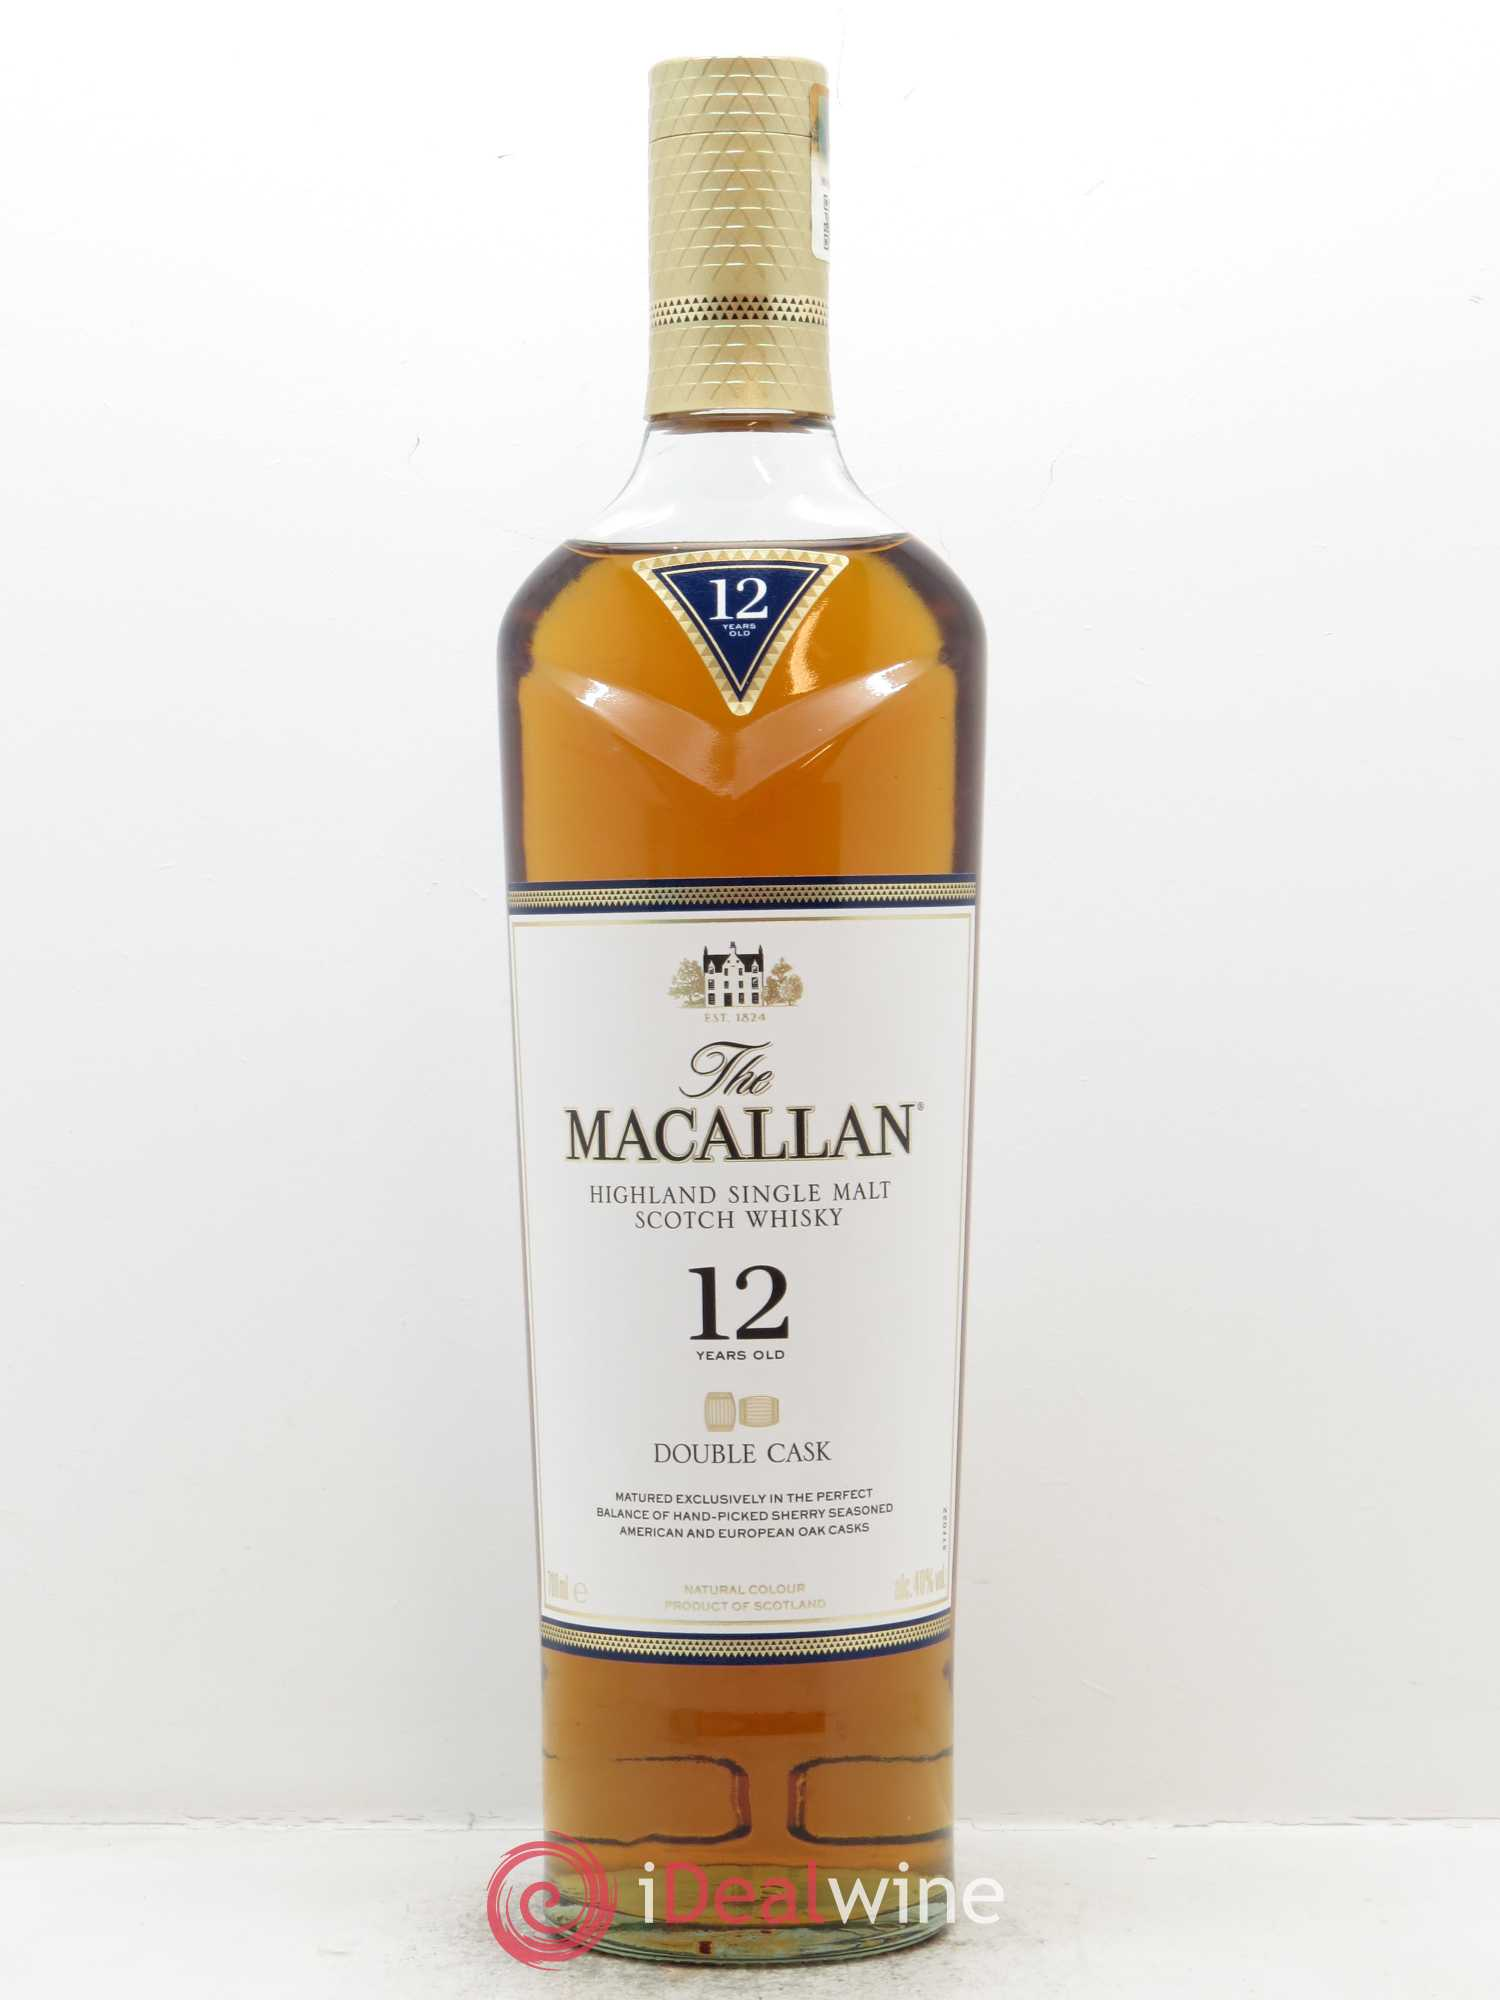 Whisky Double Cask 12 years Old The Macallan (70cl)  - Lot de 1 Bouteille